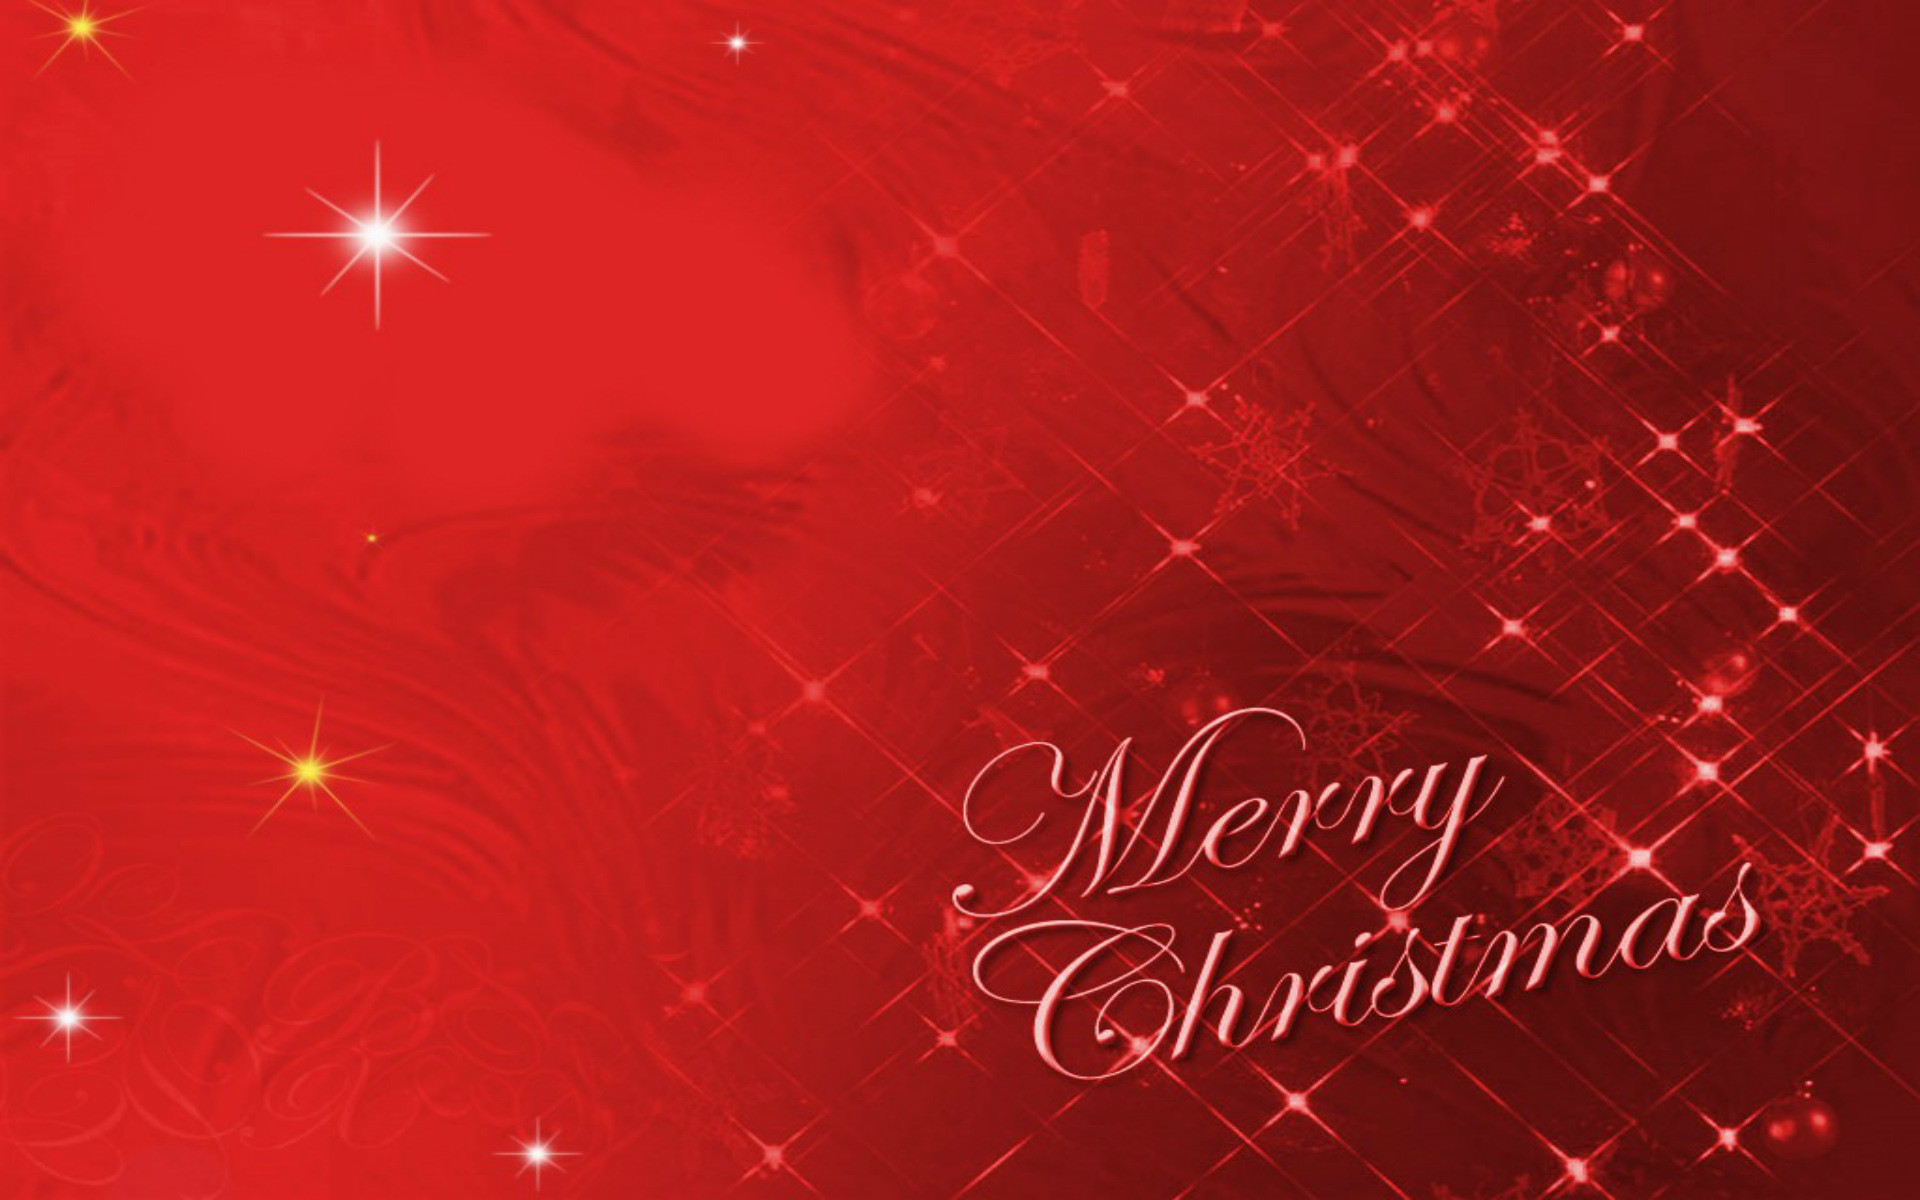 19 Merry Christmas Tree Free Download Wallpapers